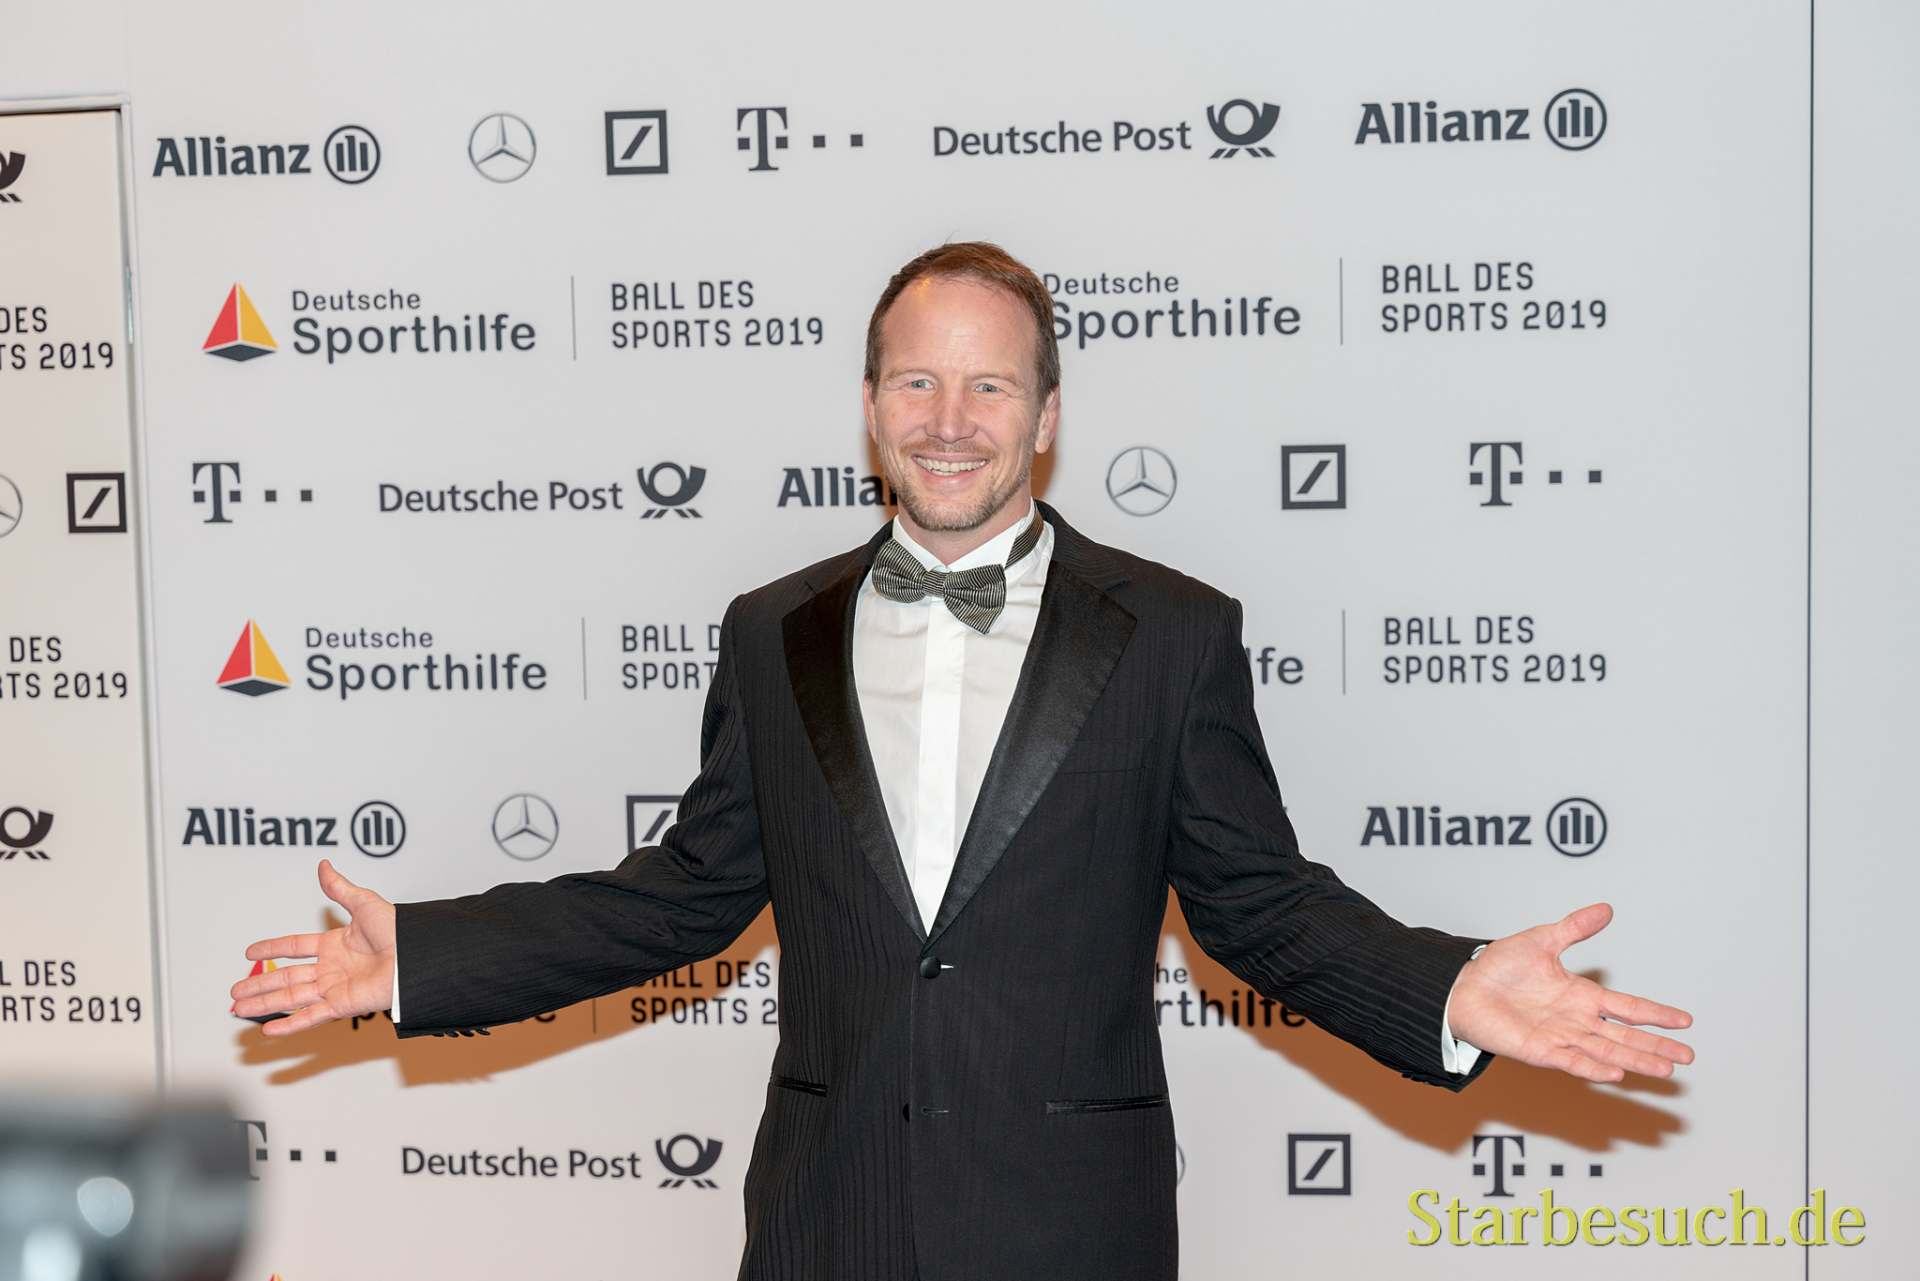 WIESBADEN, Germany - February 2nd, 2019: Alexander Leipold at Ball des Sports 2019